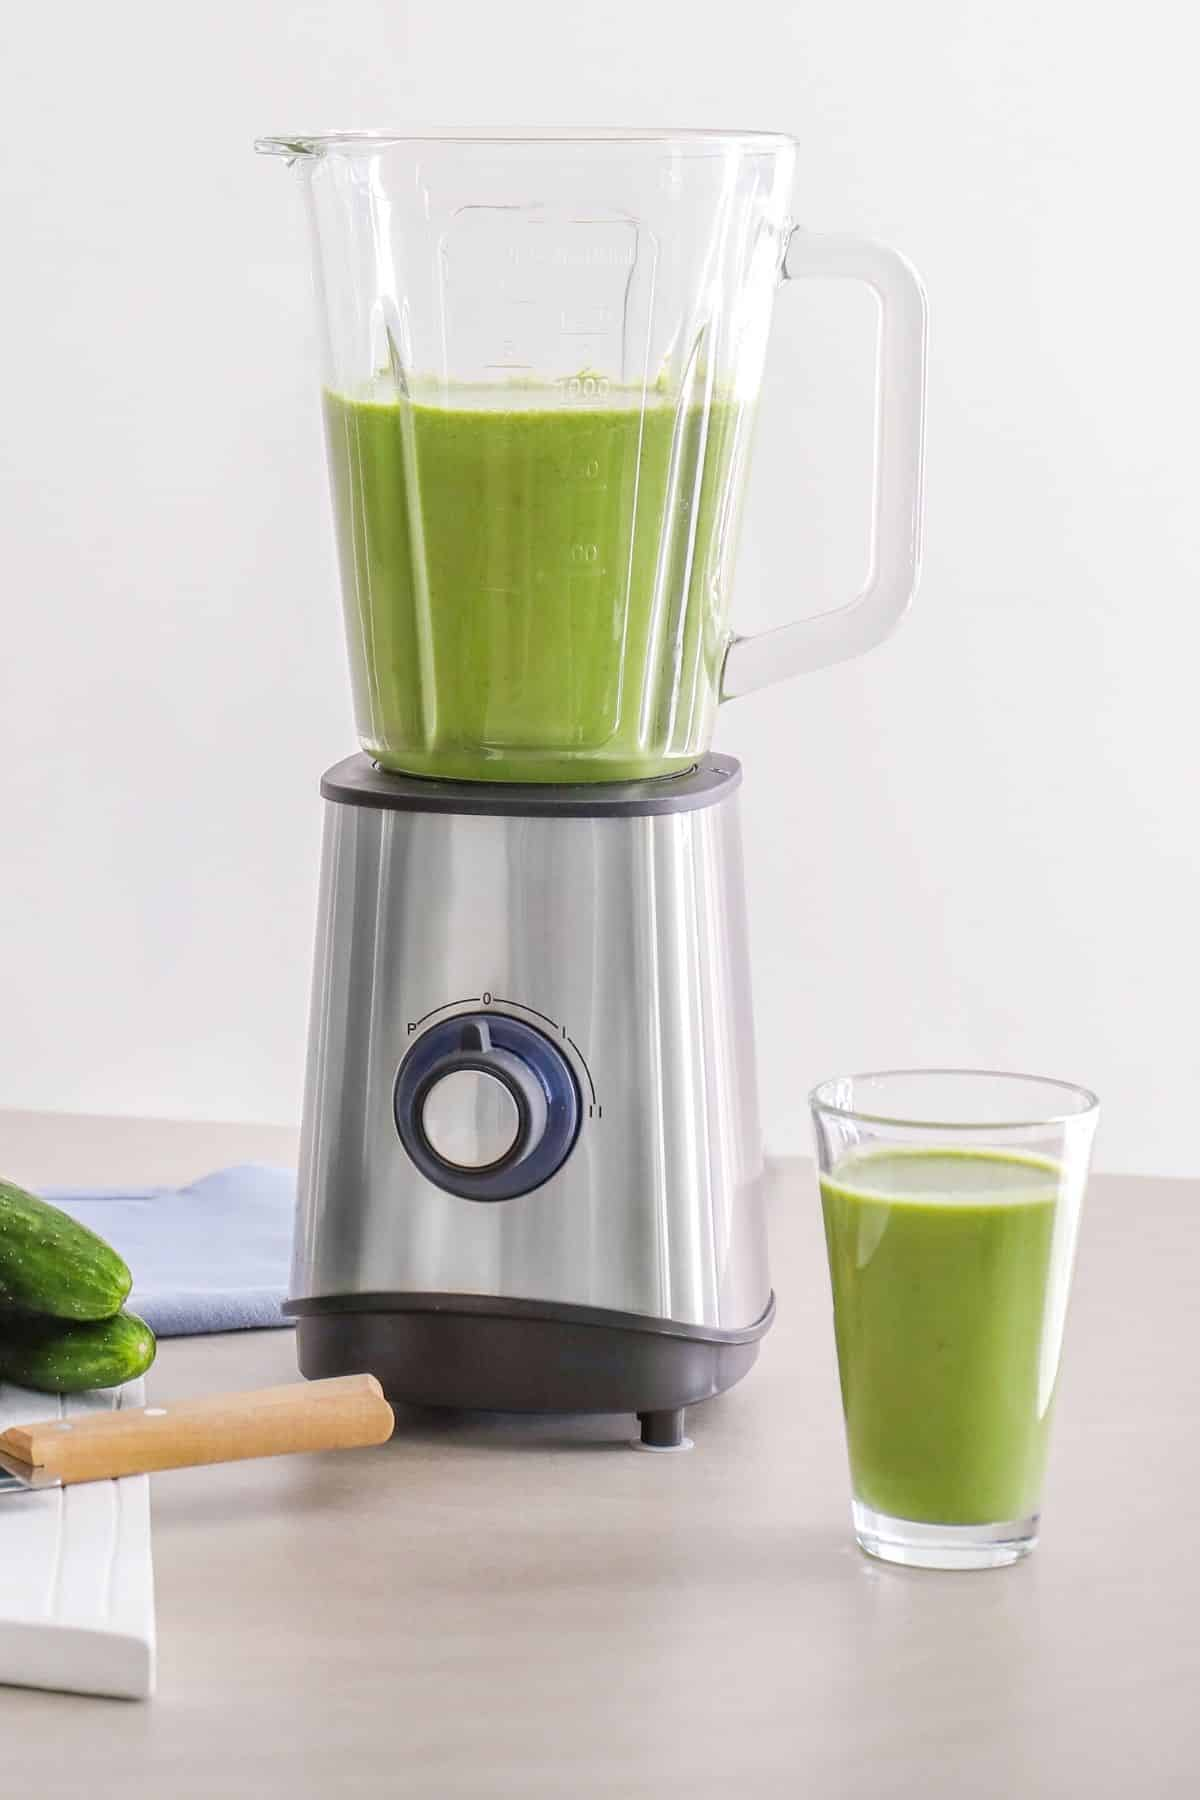 blender filled with green smoothie